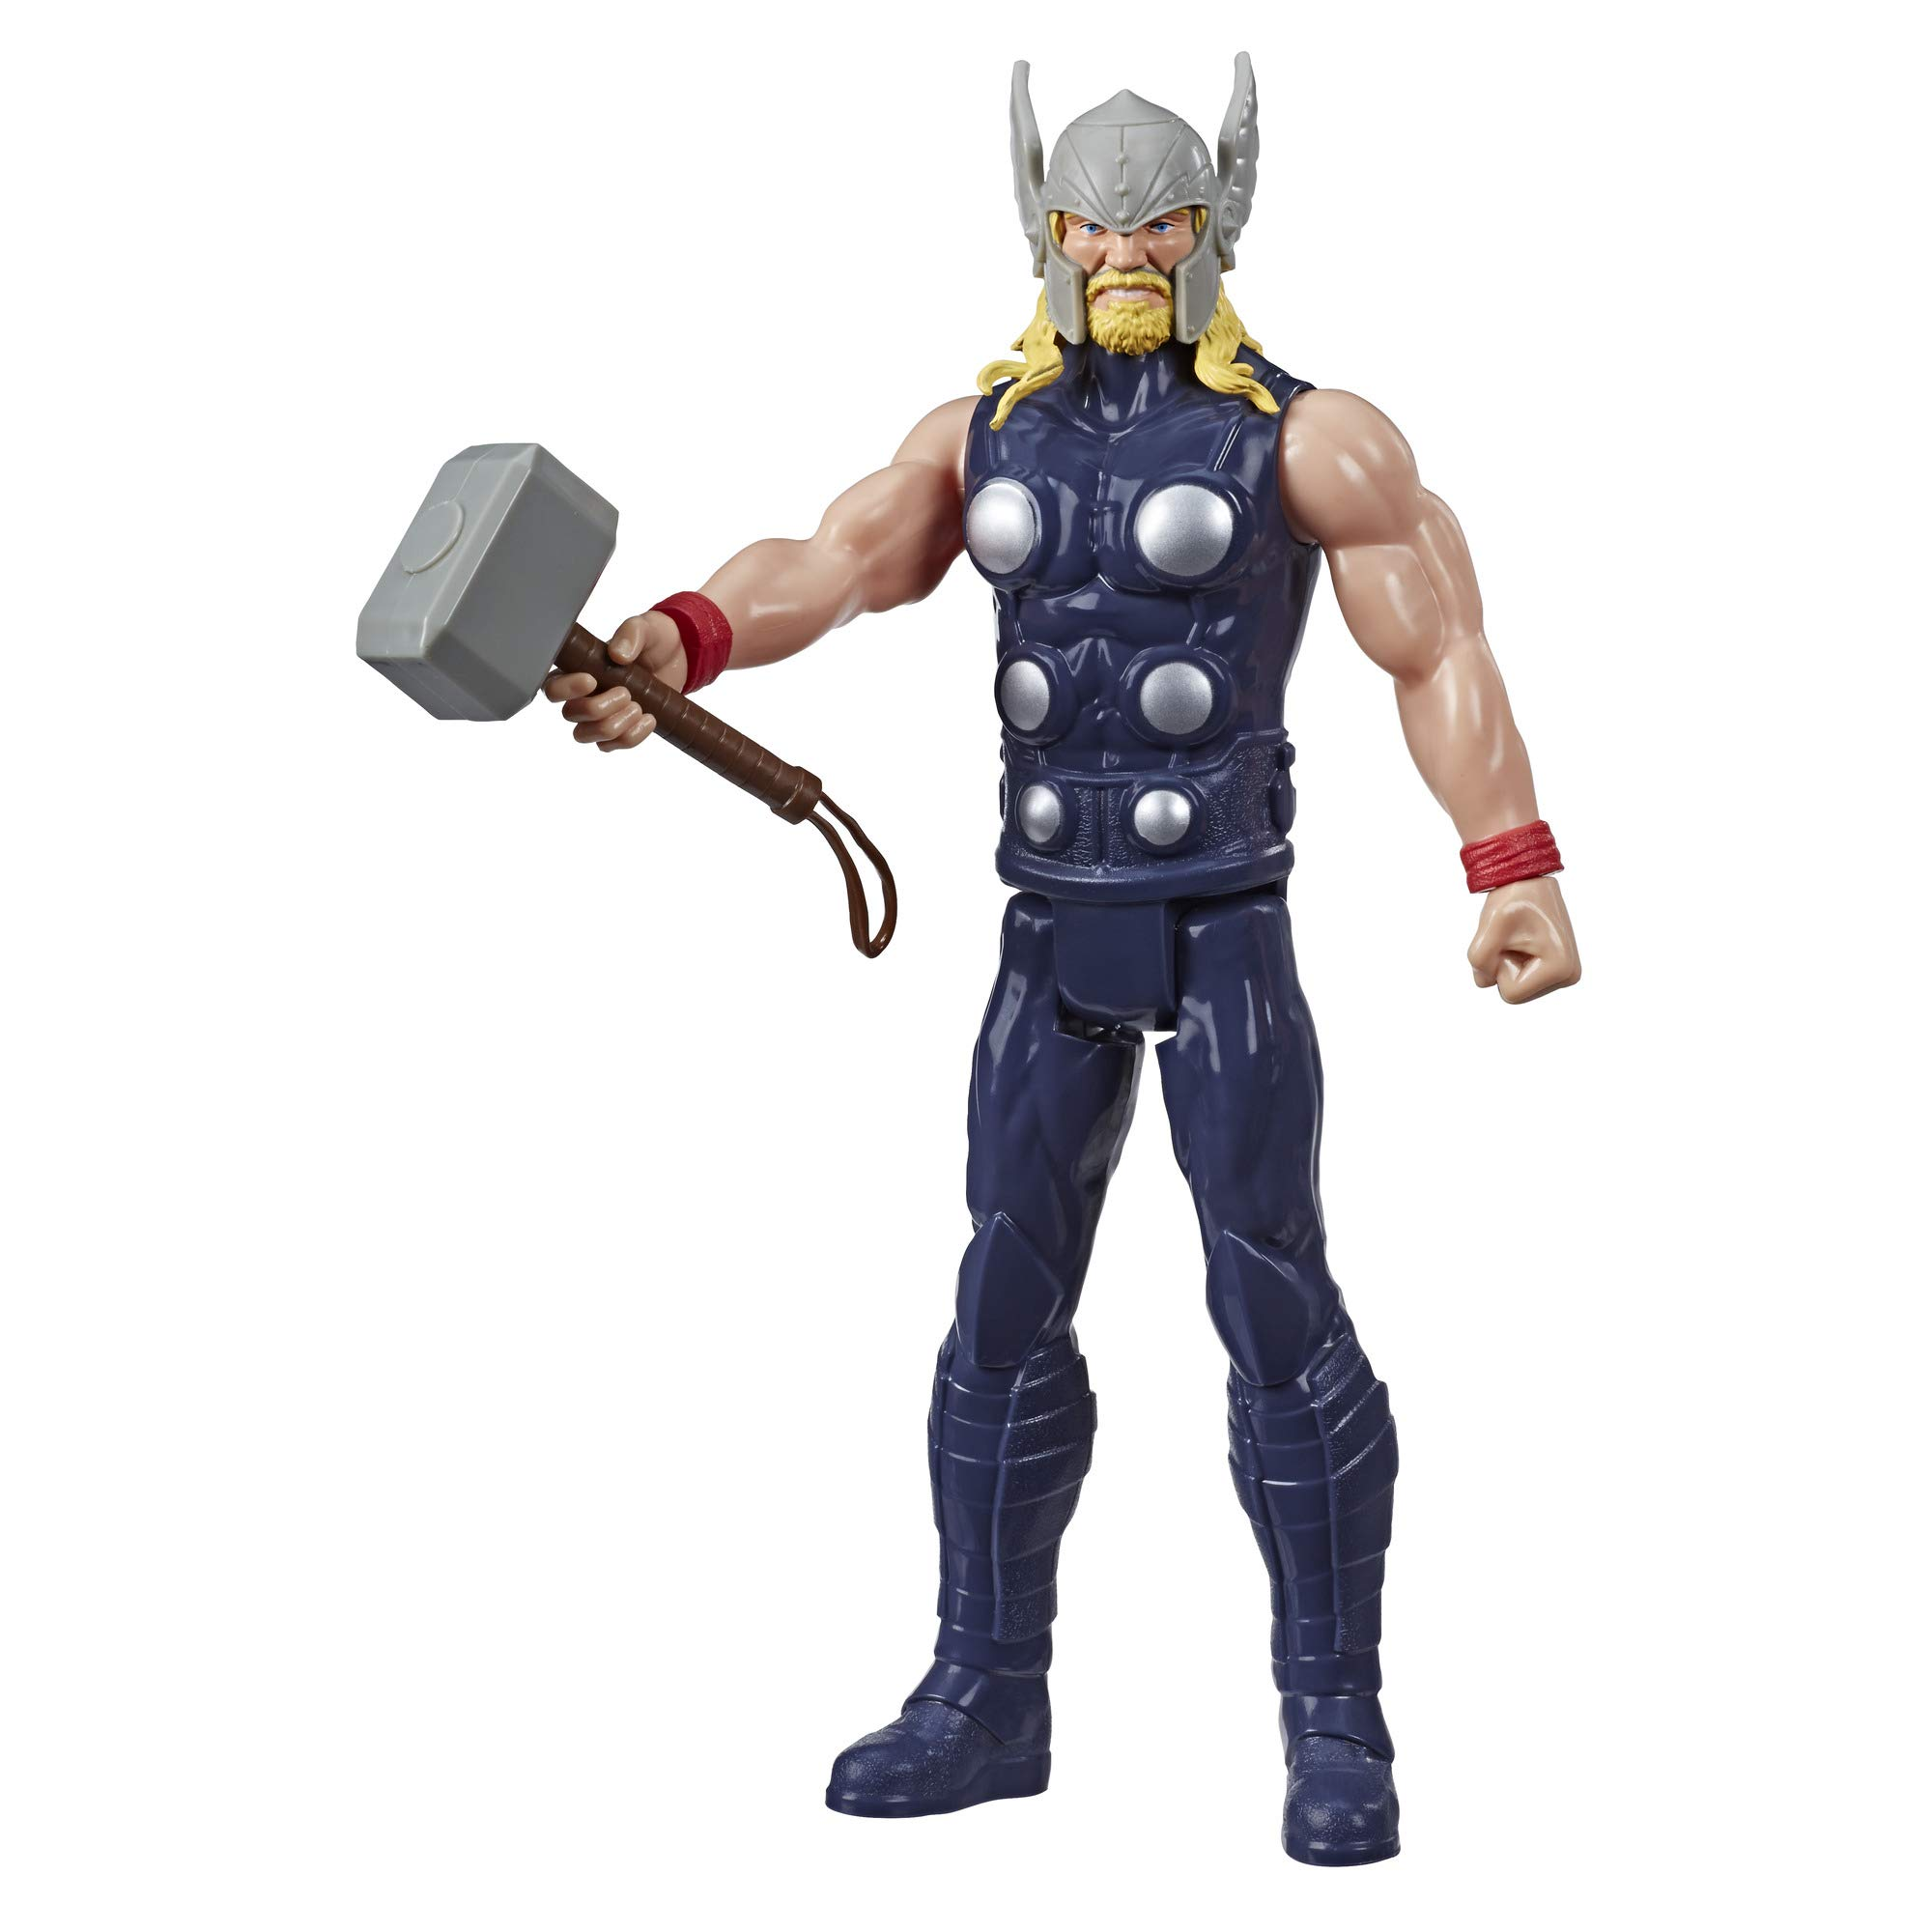 """Avengers Marvel Titan Hero Series Blast Gear Thor Action Figure, 12"""" Toy, Inspired by The Marvel Universe, for Kids Ages 4 & Up"""